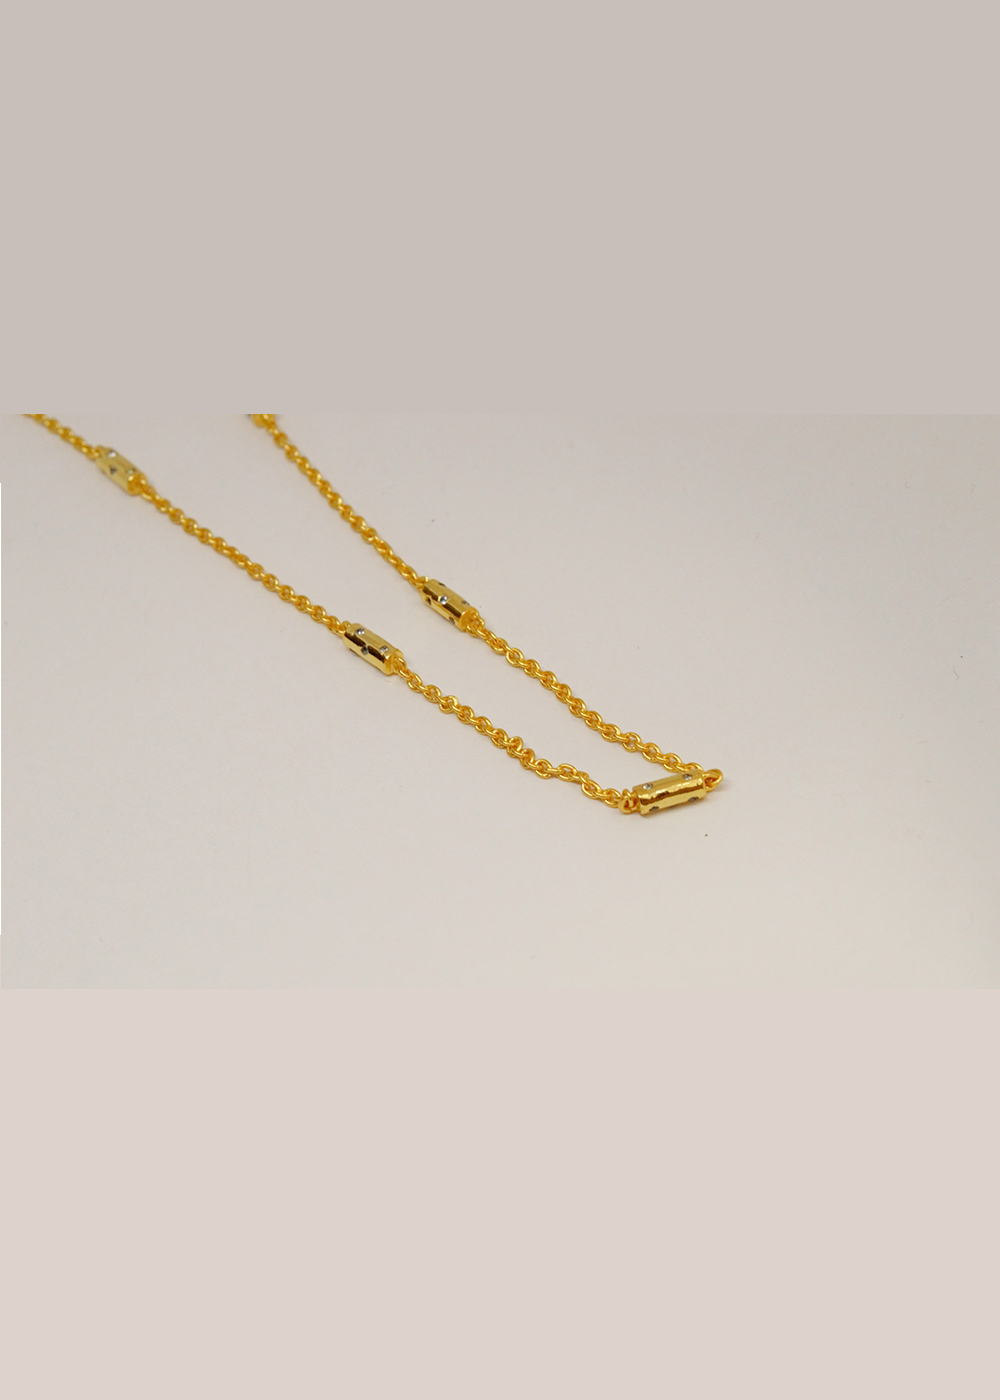 necklace collection 1 new order blue topaz